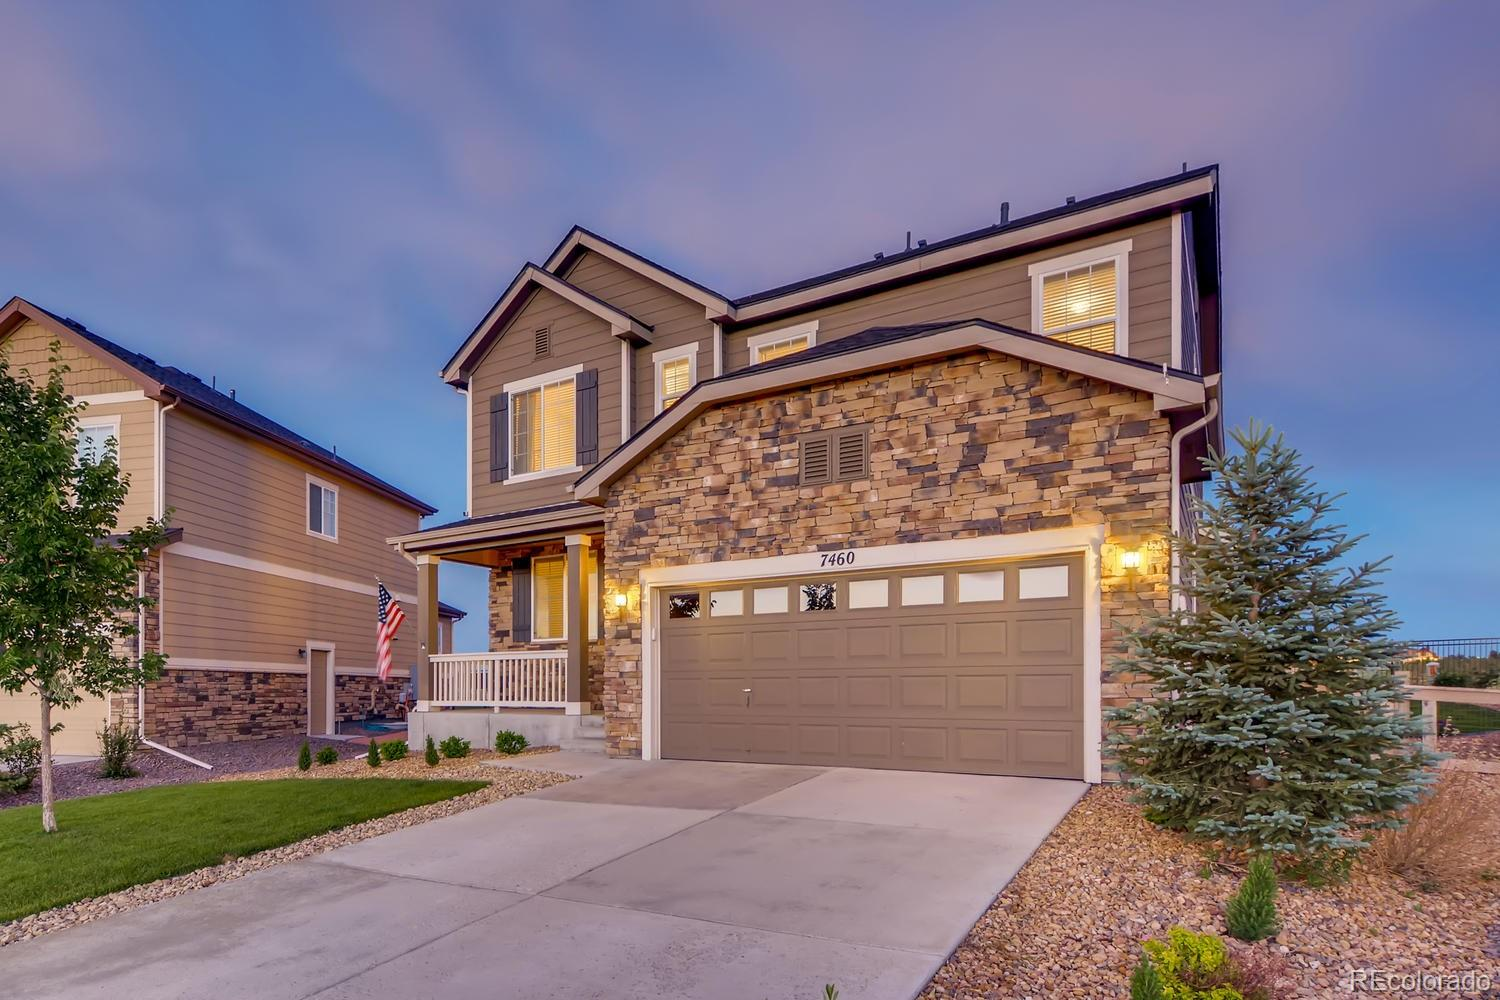 7460 S Old Hammer Way Property Photo - Aurora, CO real estate listing